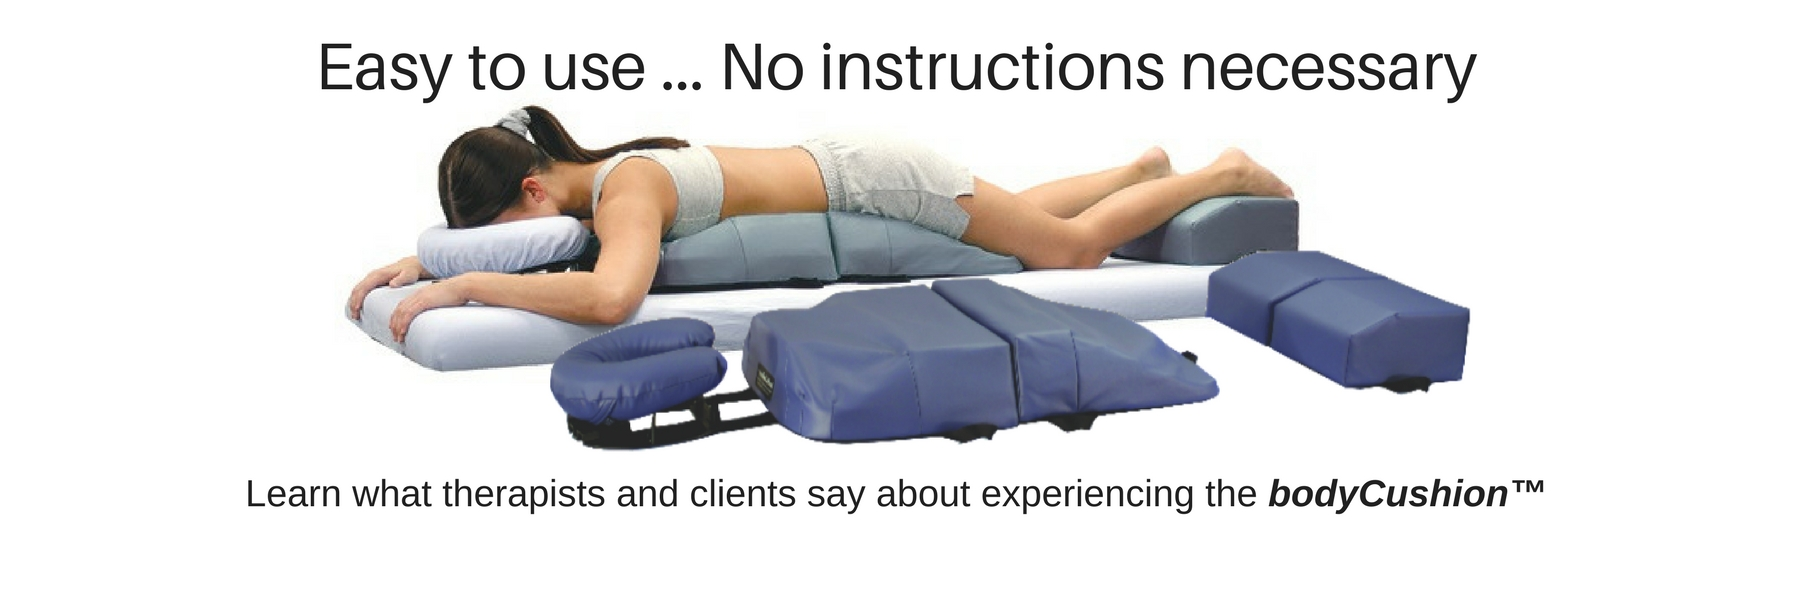 Easy to use ... No instructions necessary. Learn what therapists and clients say about experiencing the bodyCushion